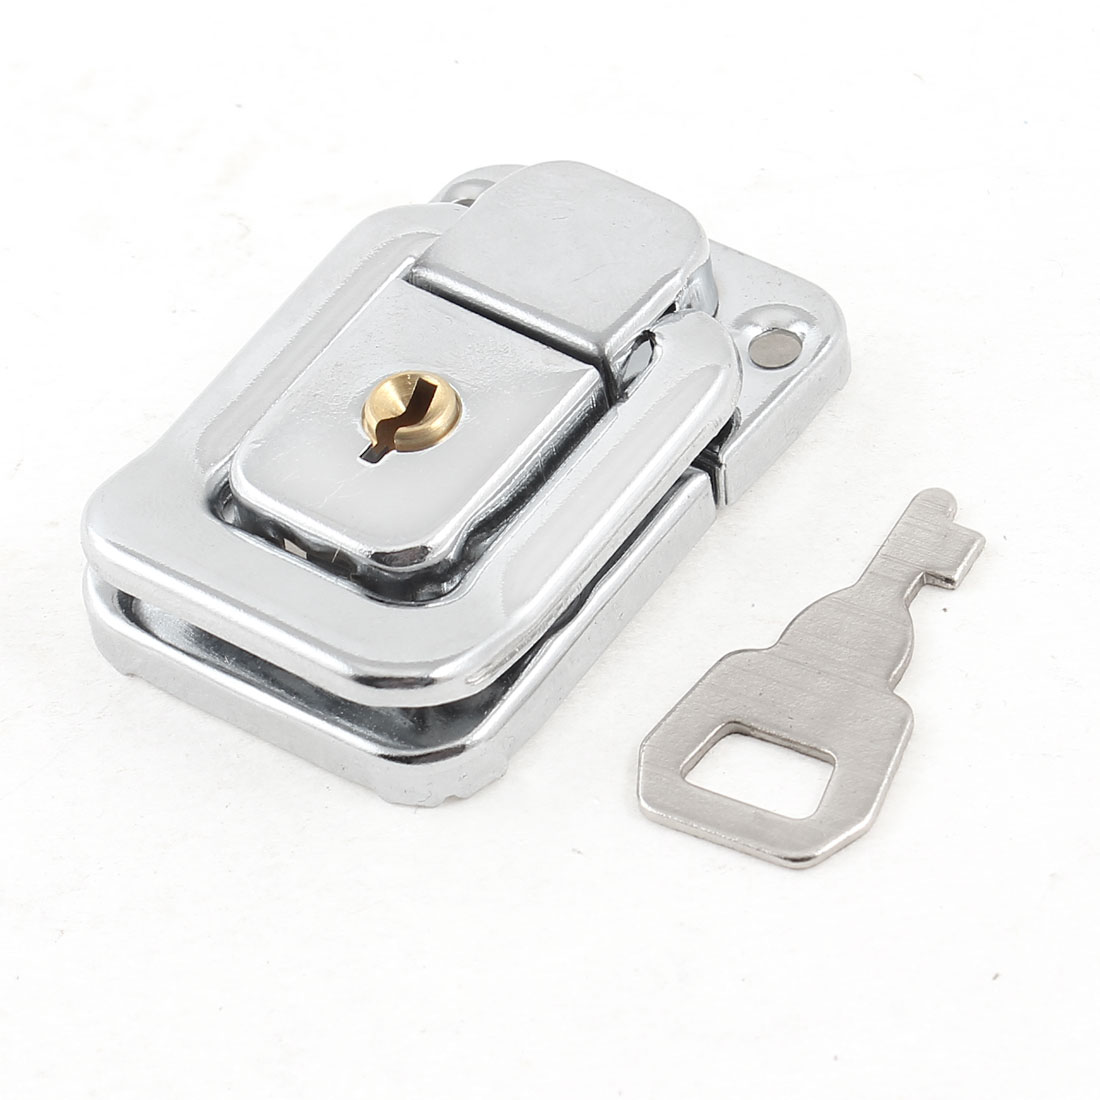 Unique Bargains Replacement Sliver Tone Hasp Latch Lock w Key for